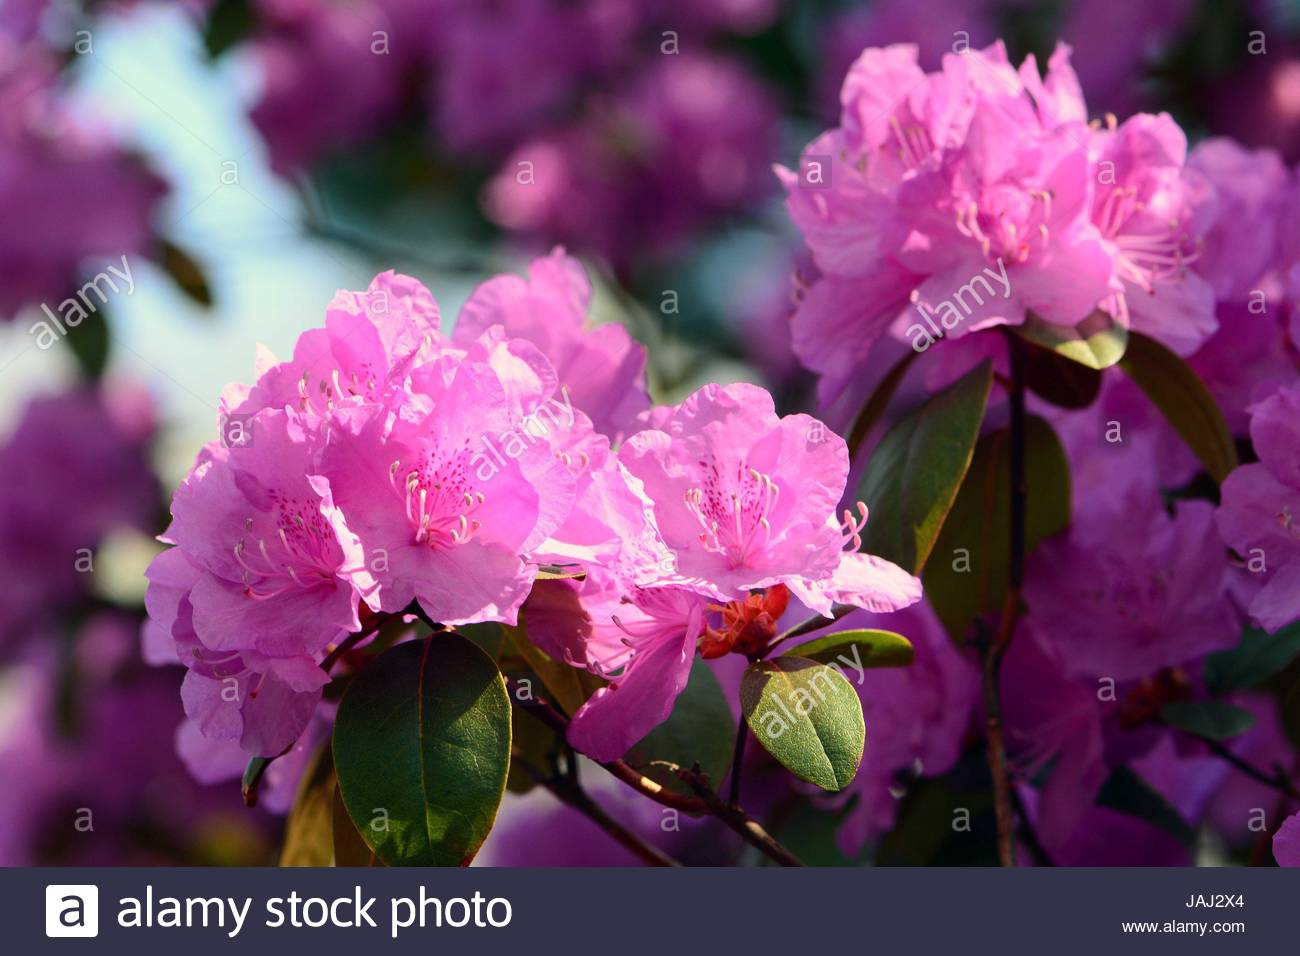 Close up of a flowering rhododendron shrub in spring. - Stock Image